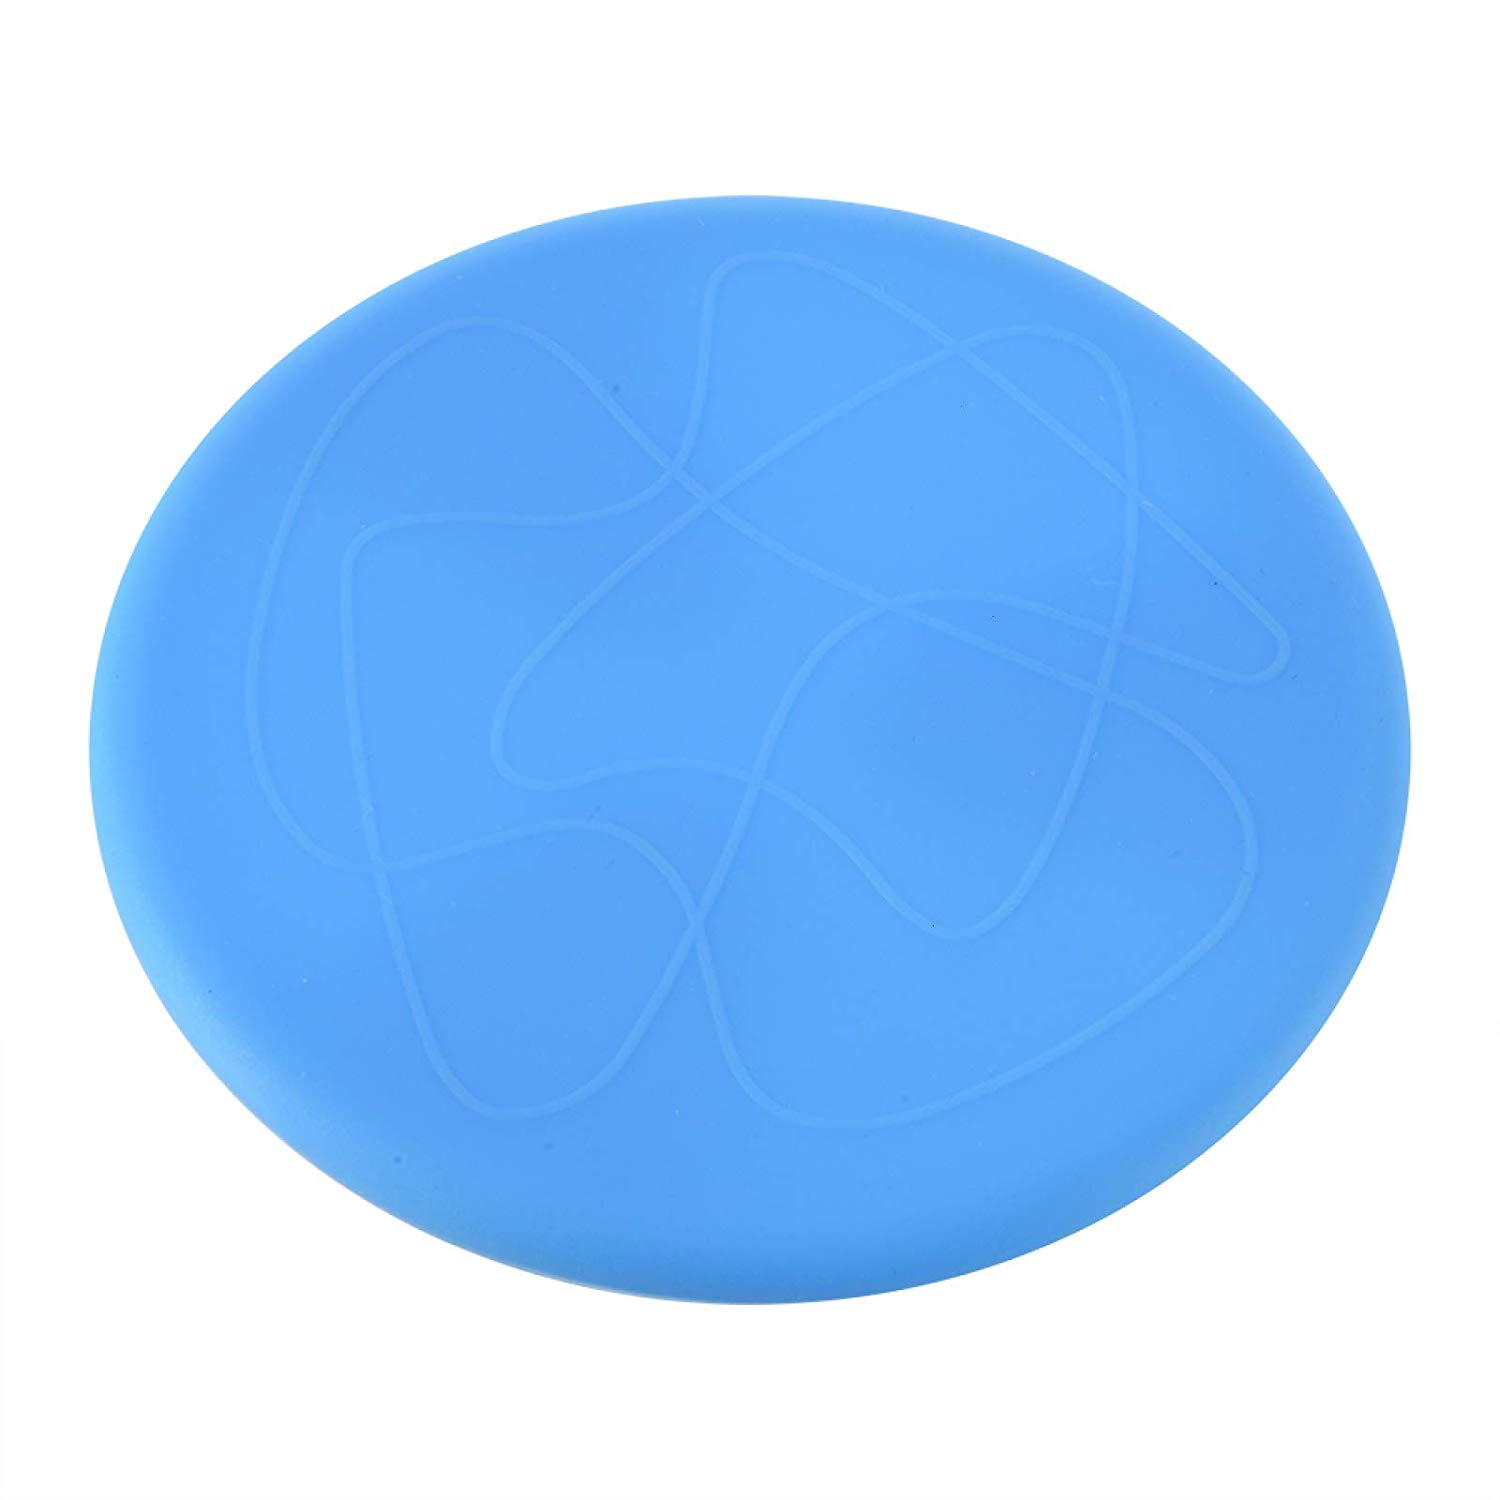 Stocked Feature and Mats & Pads Table Decoration & Accessories Type multi-function silicone grip coasters